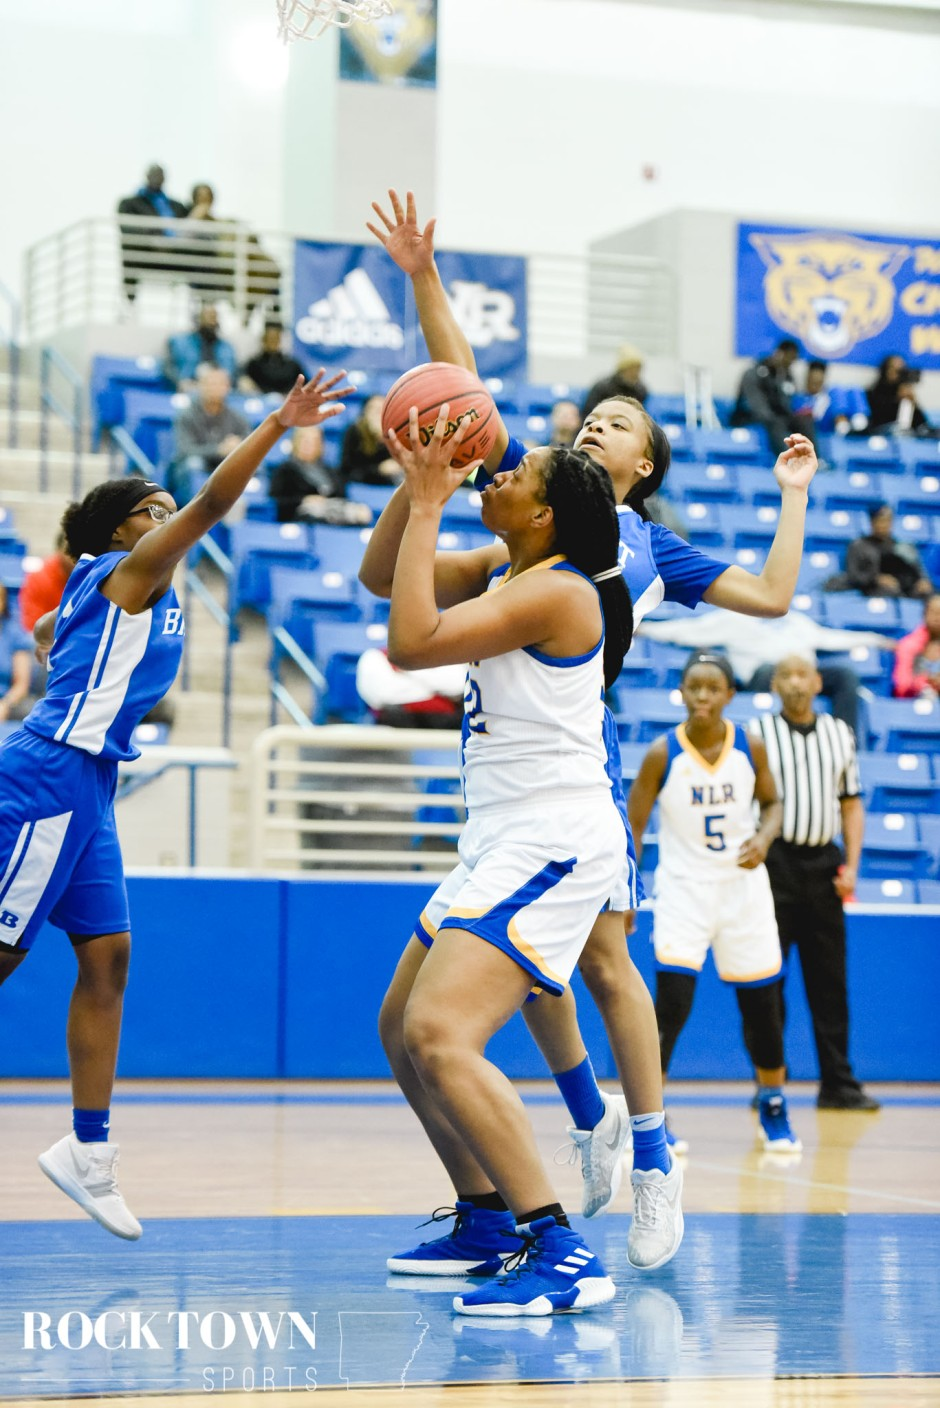 nlr_bryant_basketball_2019-30